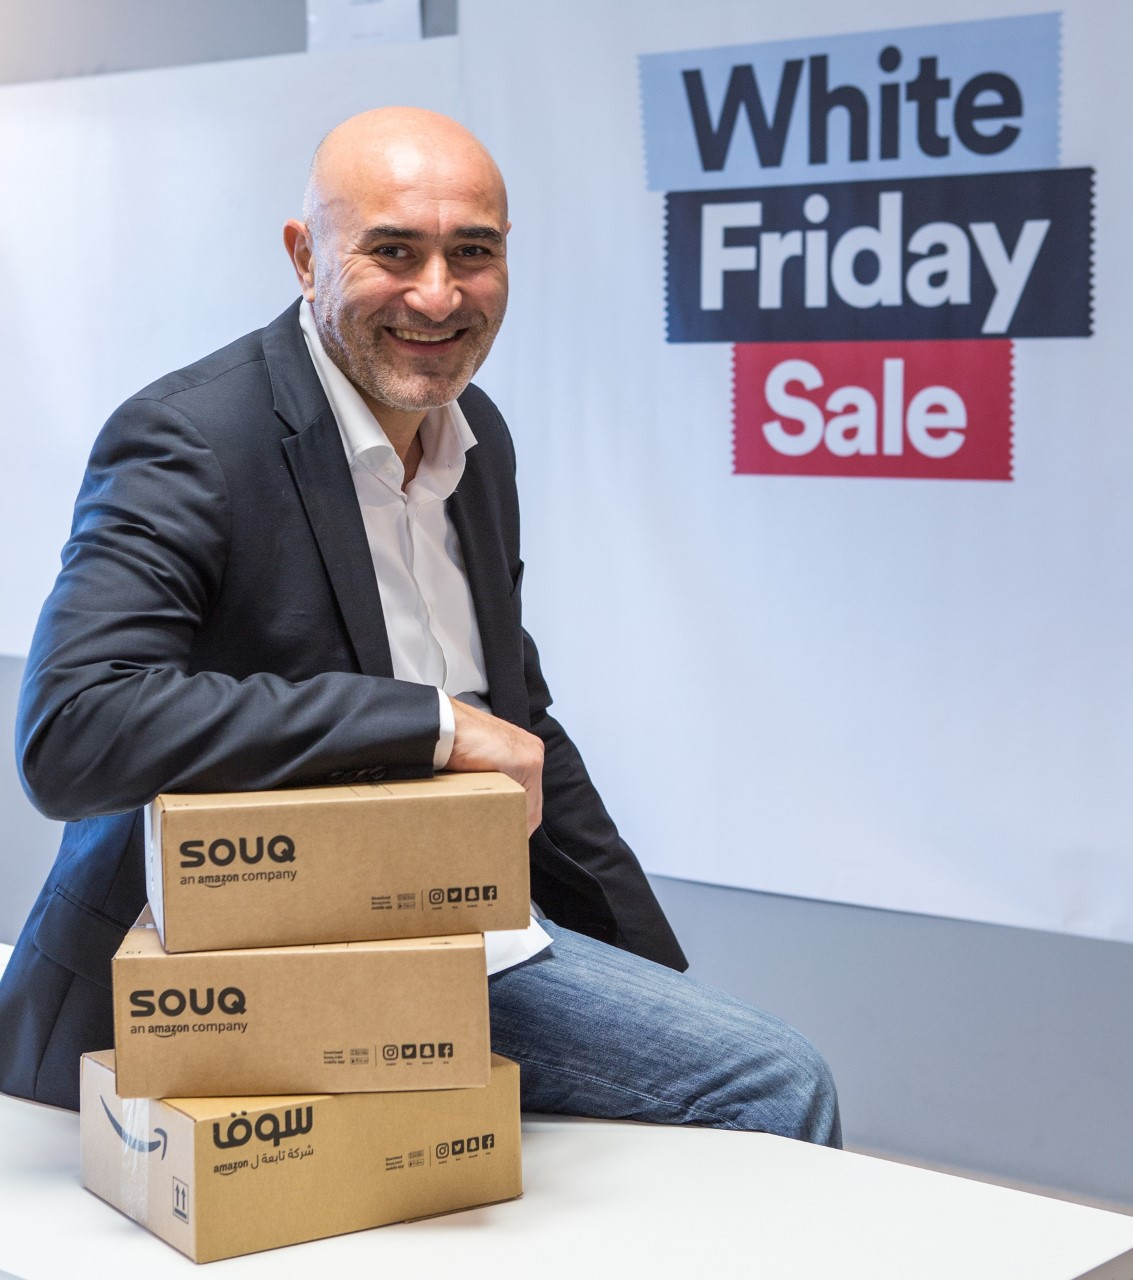 Revealed: how much you spent in Souq.com's White Friday sale